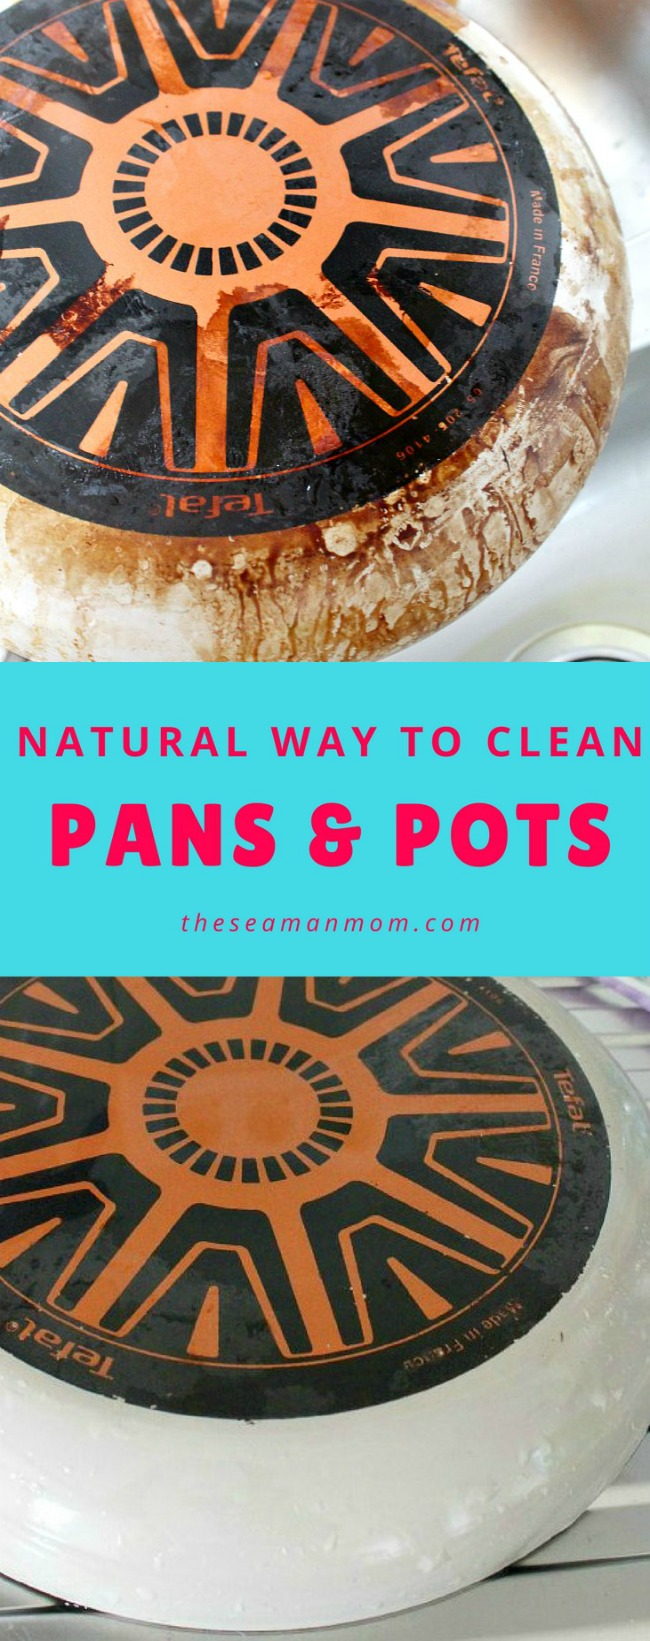 Natural way to clean pans and pots